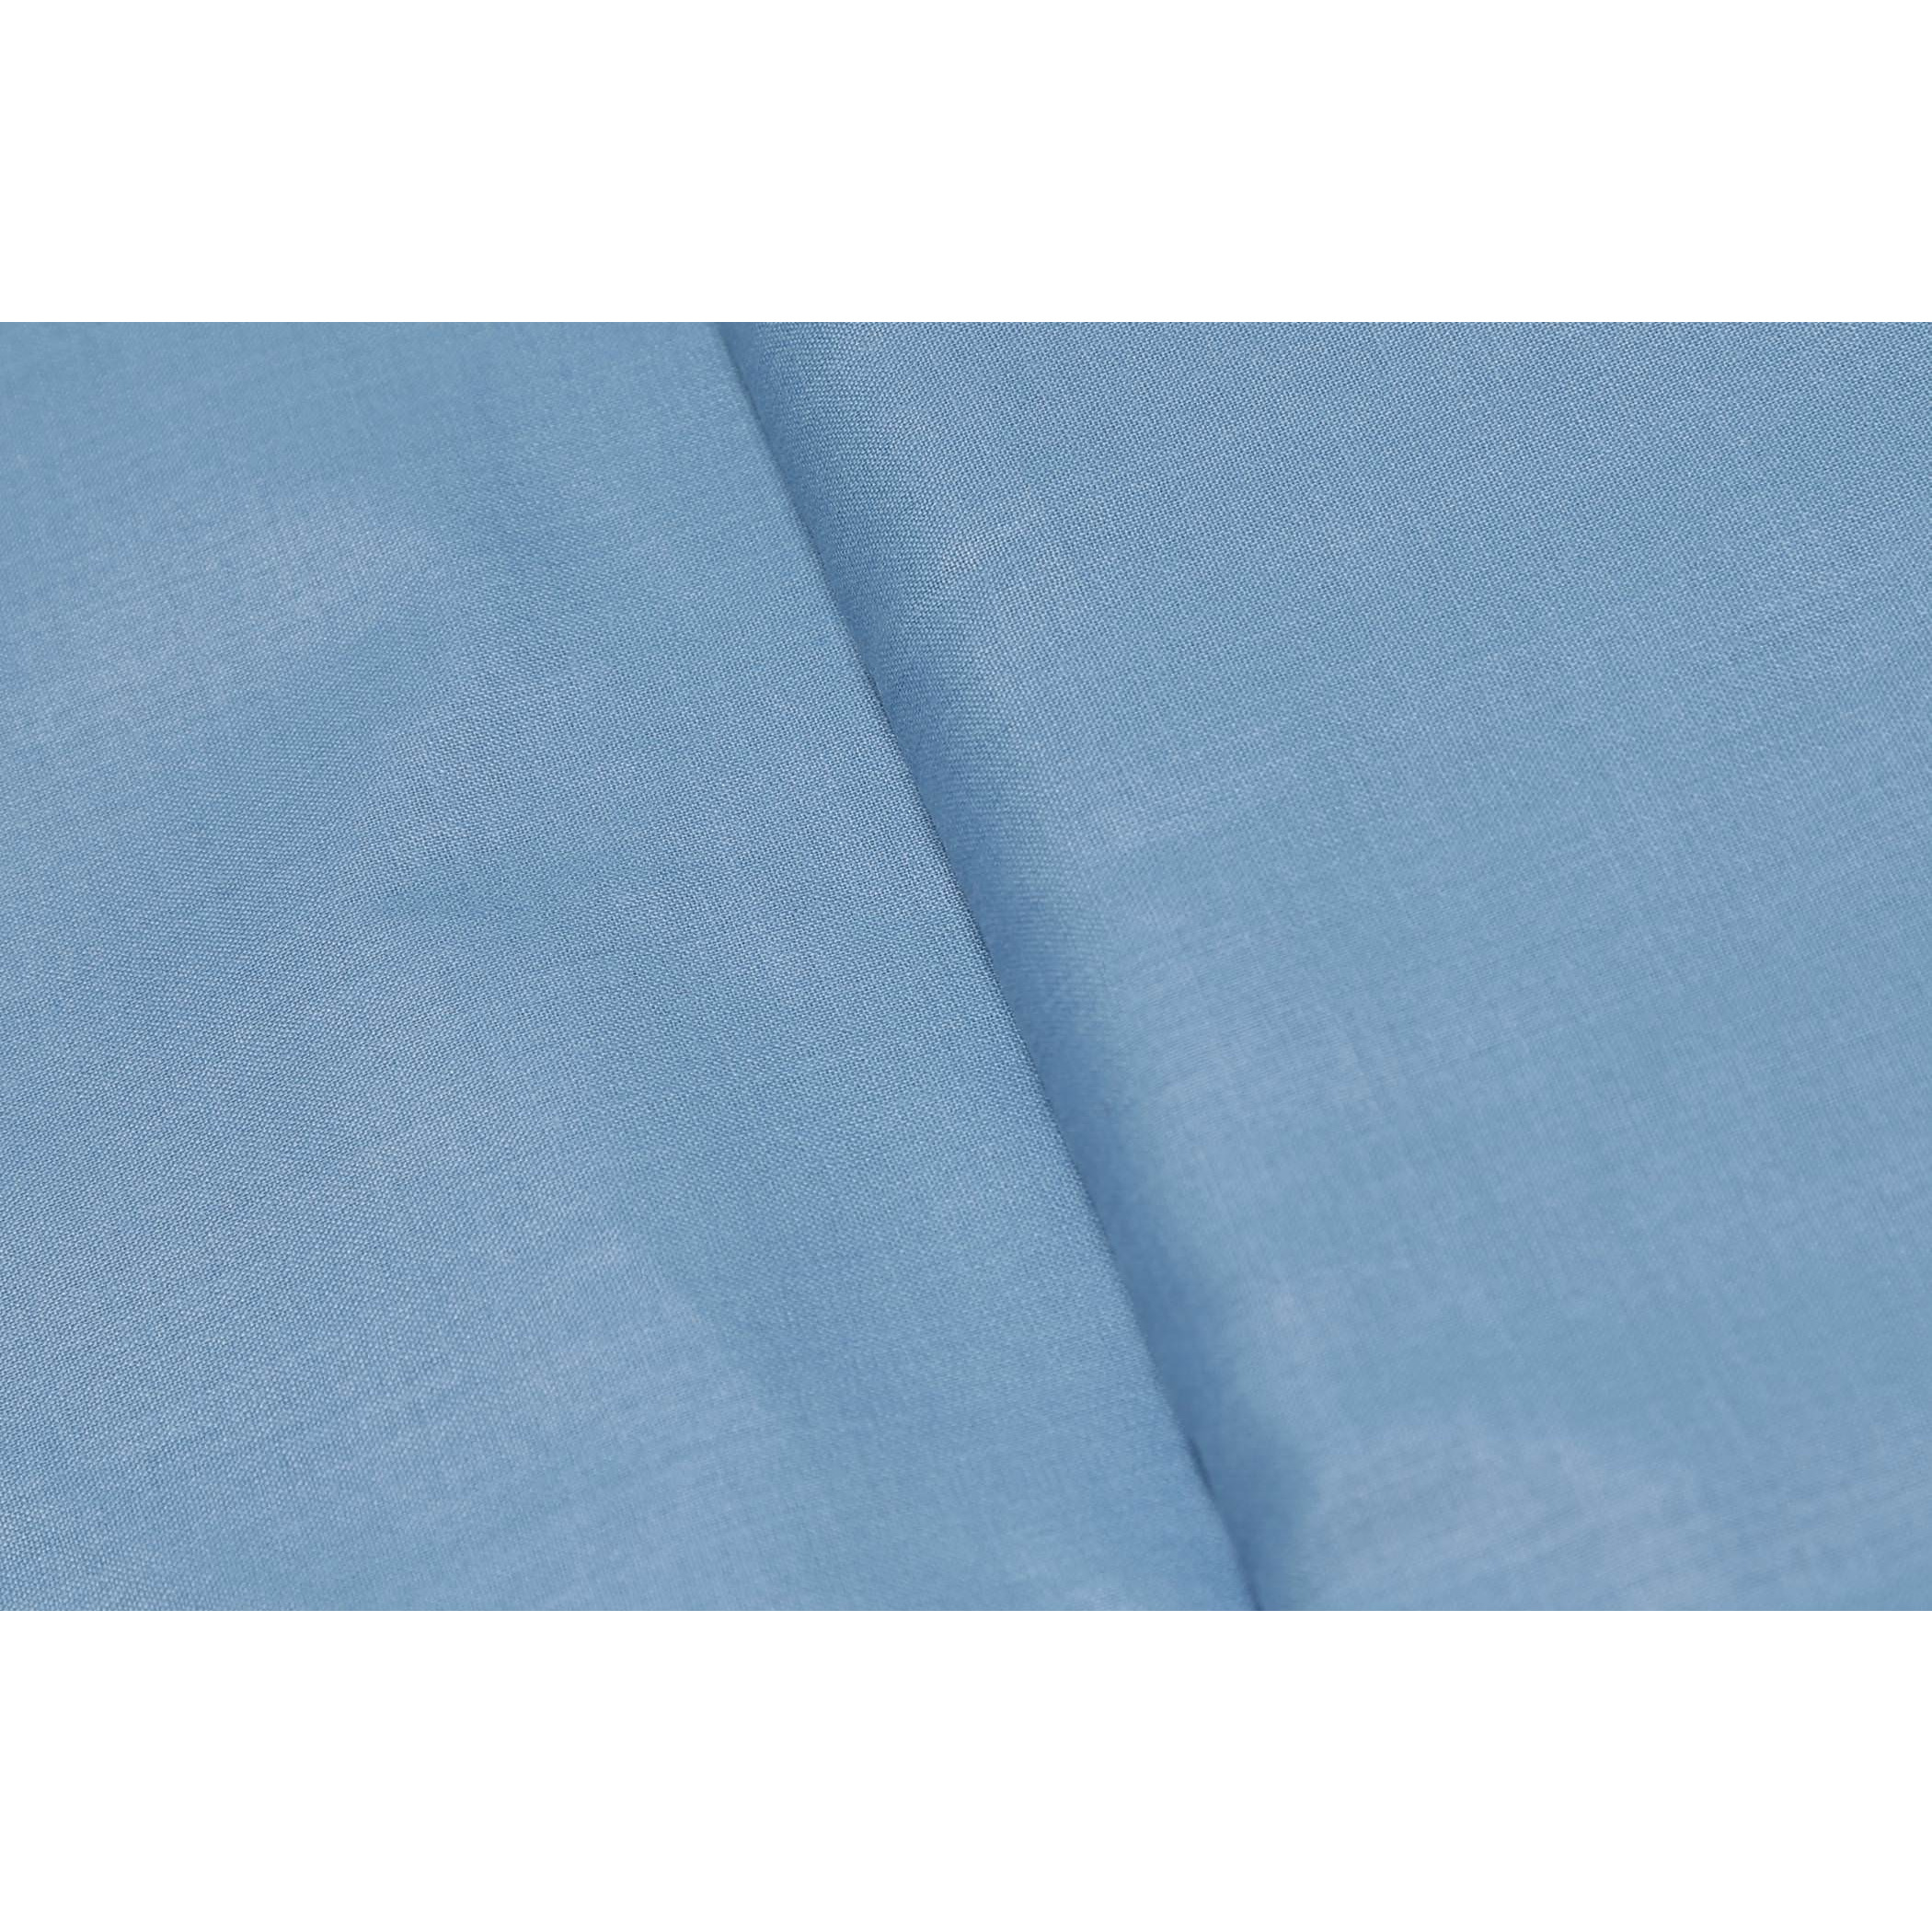 Sojanya (Since 1958)B 3 Metres Cotton Blend Shirt Fabric Solid Fine Quality